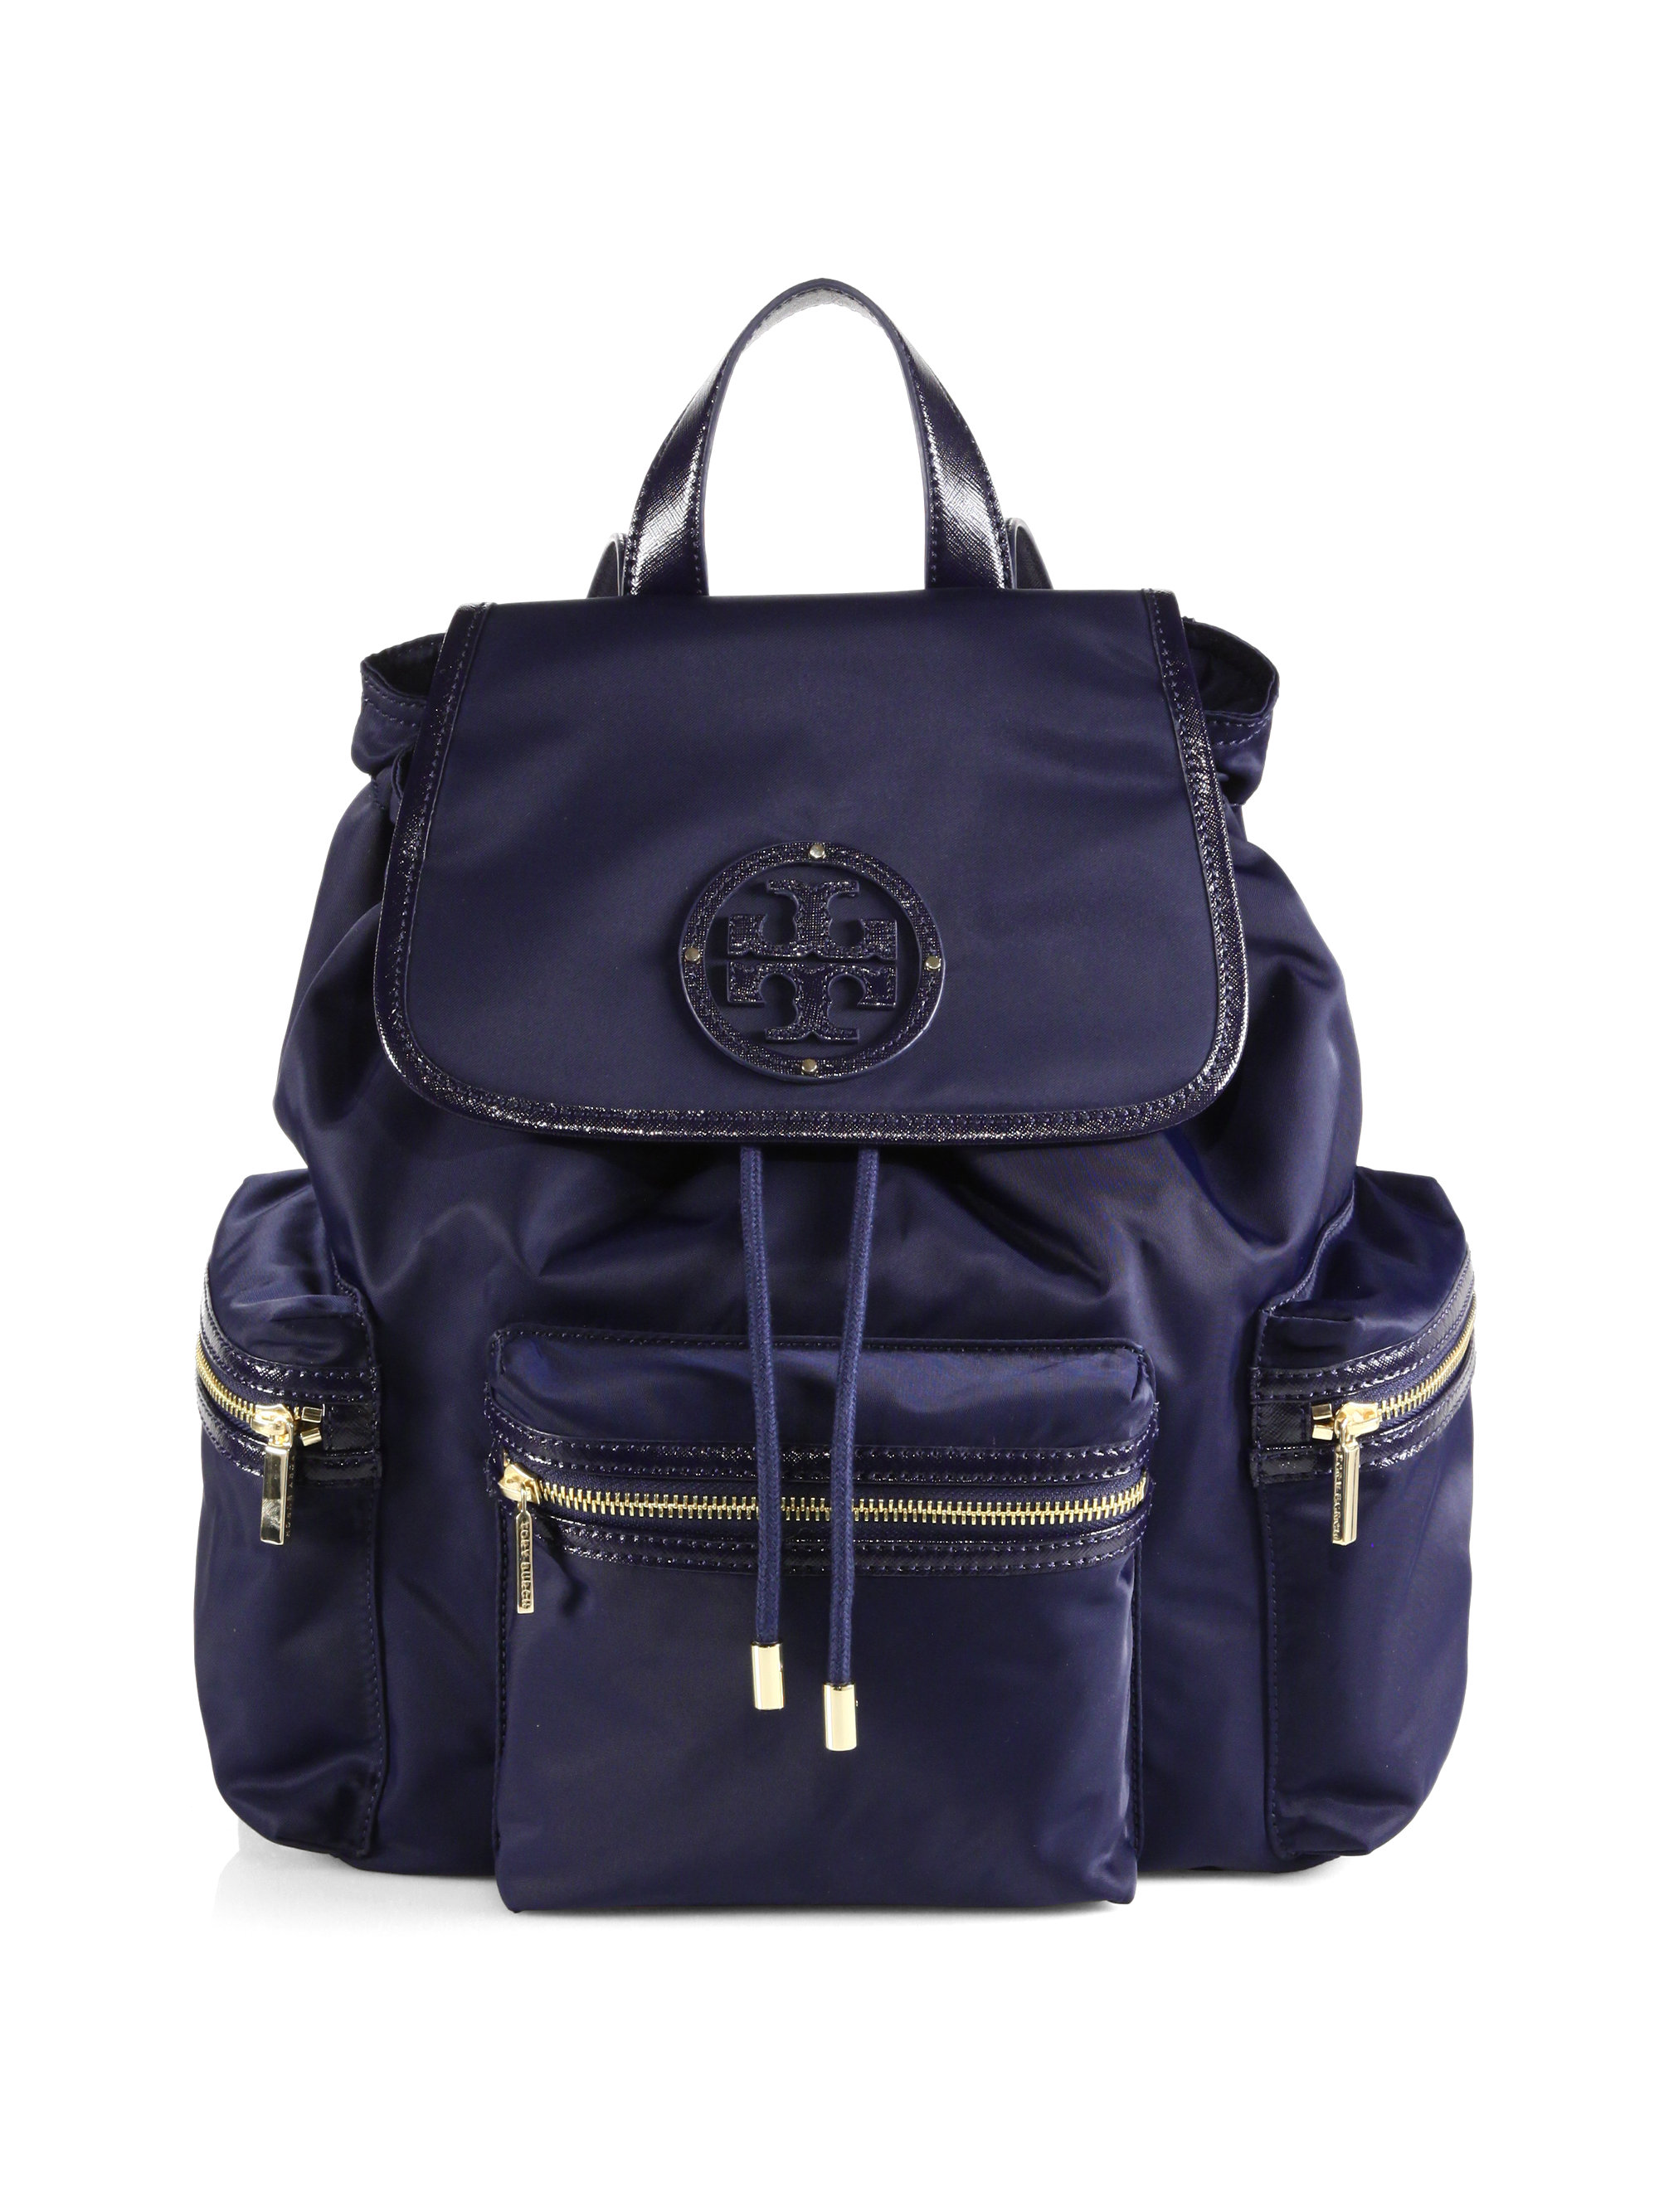 Tory Burch Bill Nylon Backpack in Blue (VIOLET BLUE)